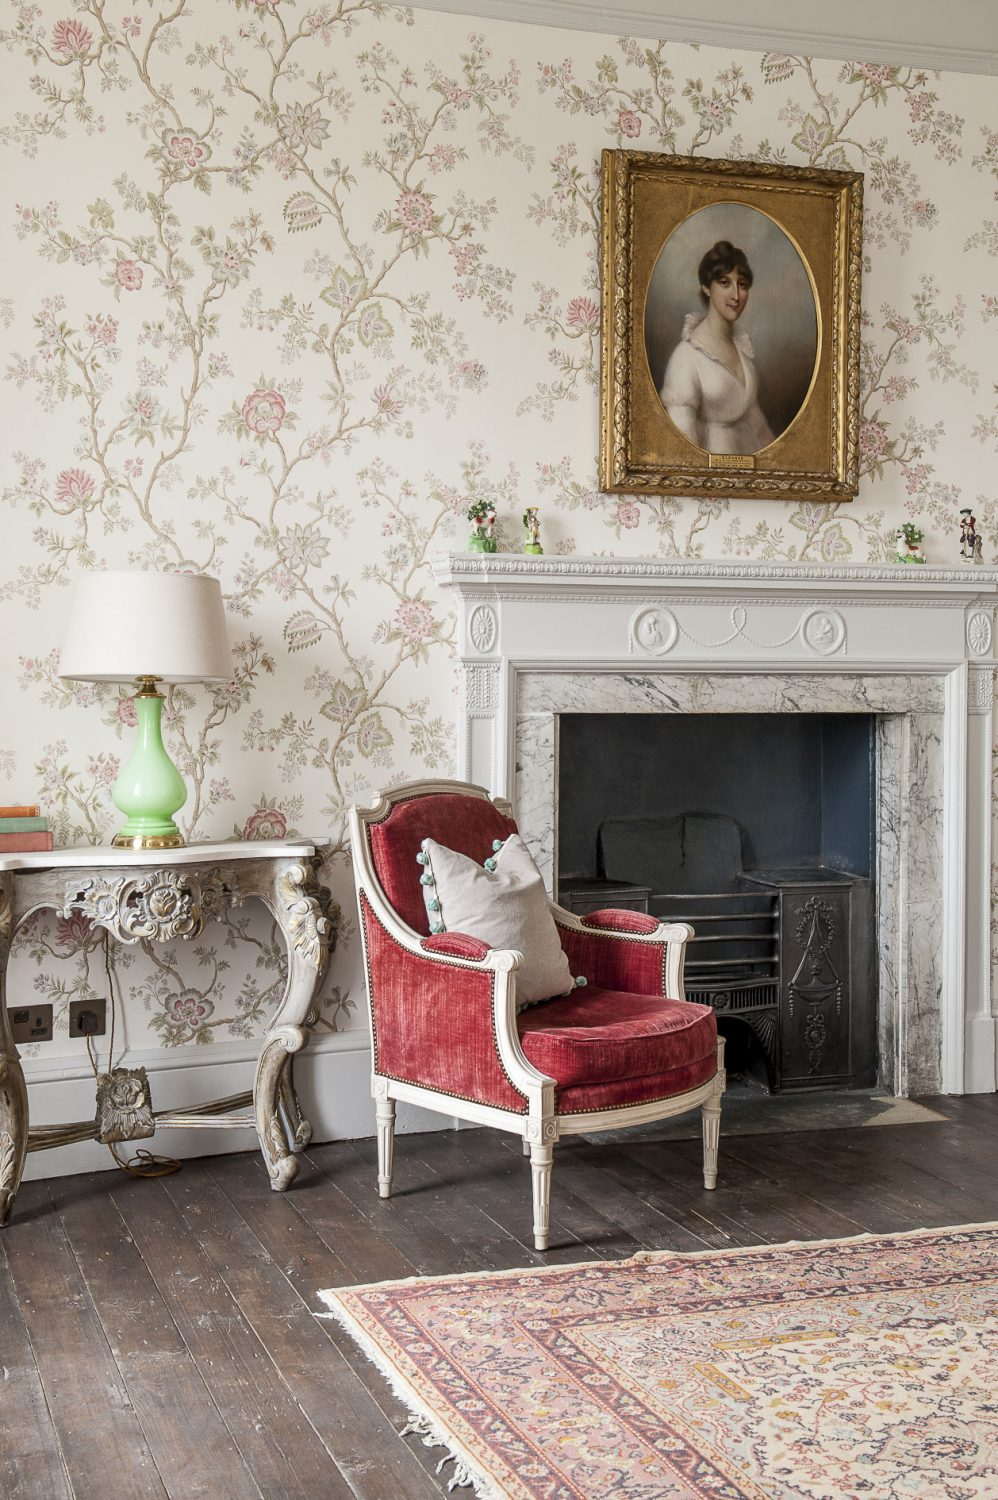 The wall sconces, portrait, green glass lamp and console table are all Ardingly finds